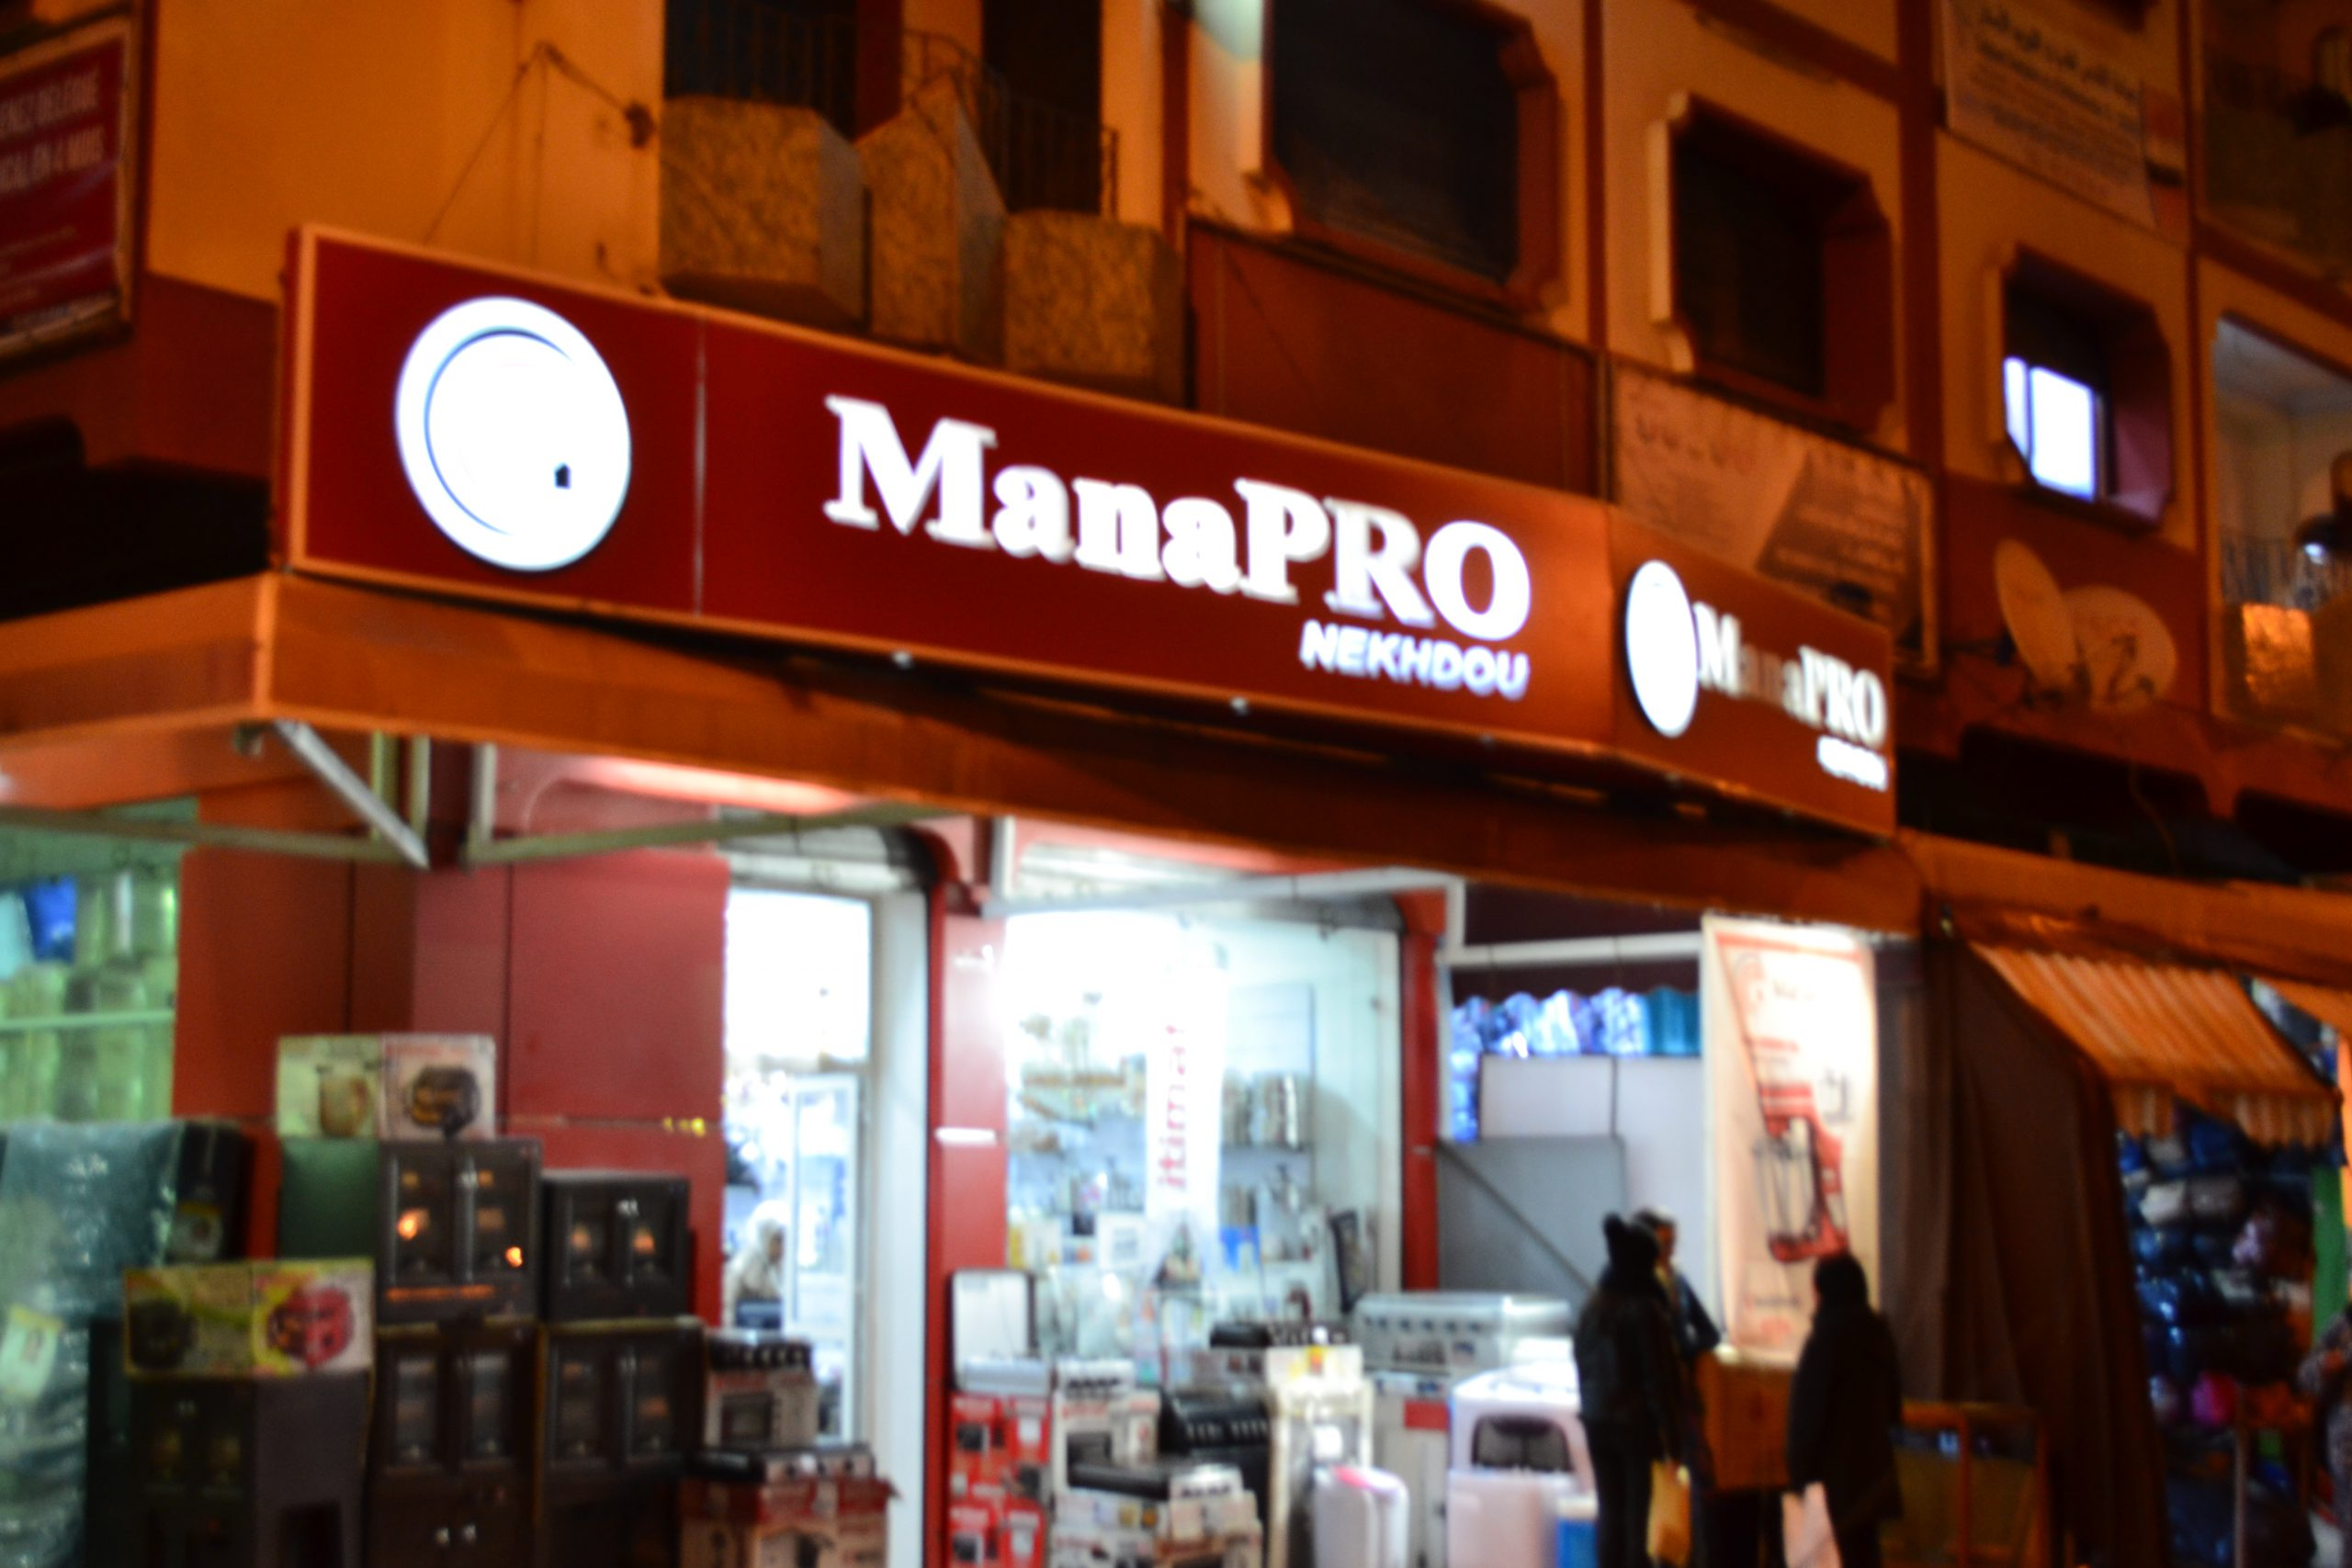 Manapro Electroménager